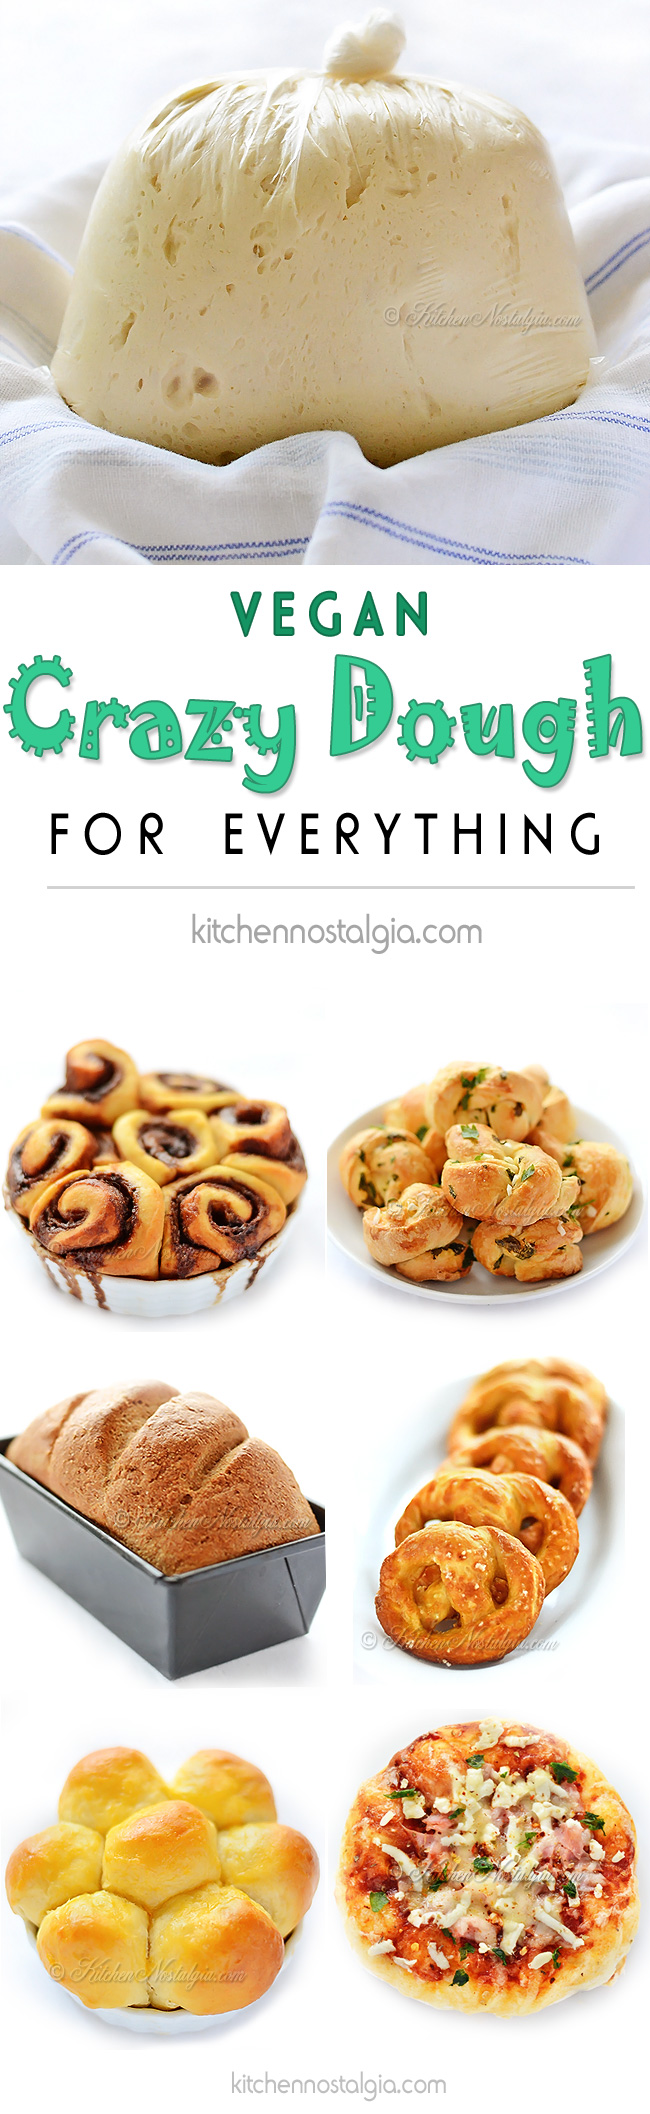 Vegan Crazy Dough - kitchennostalgia.com